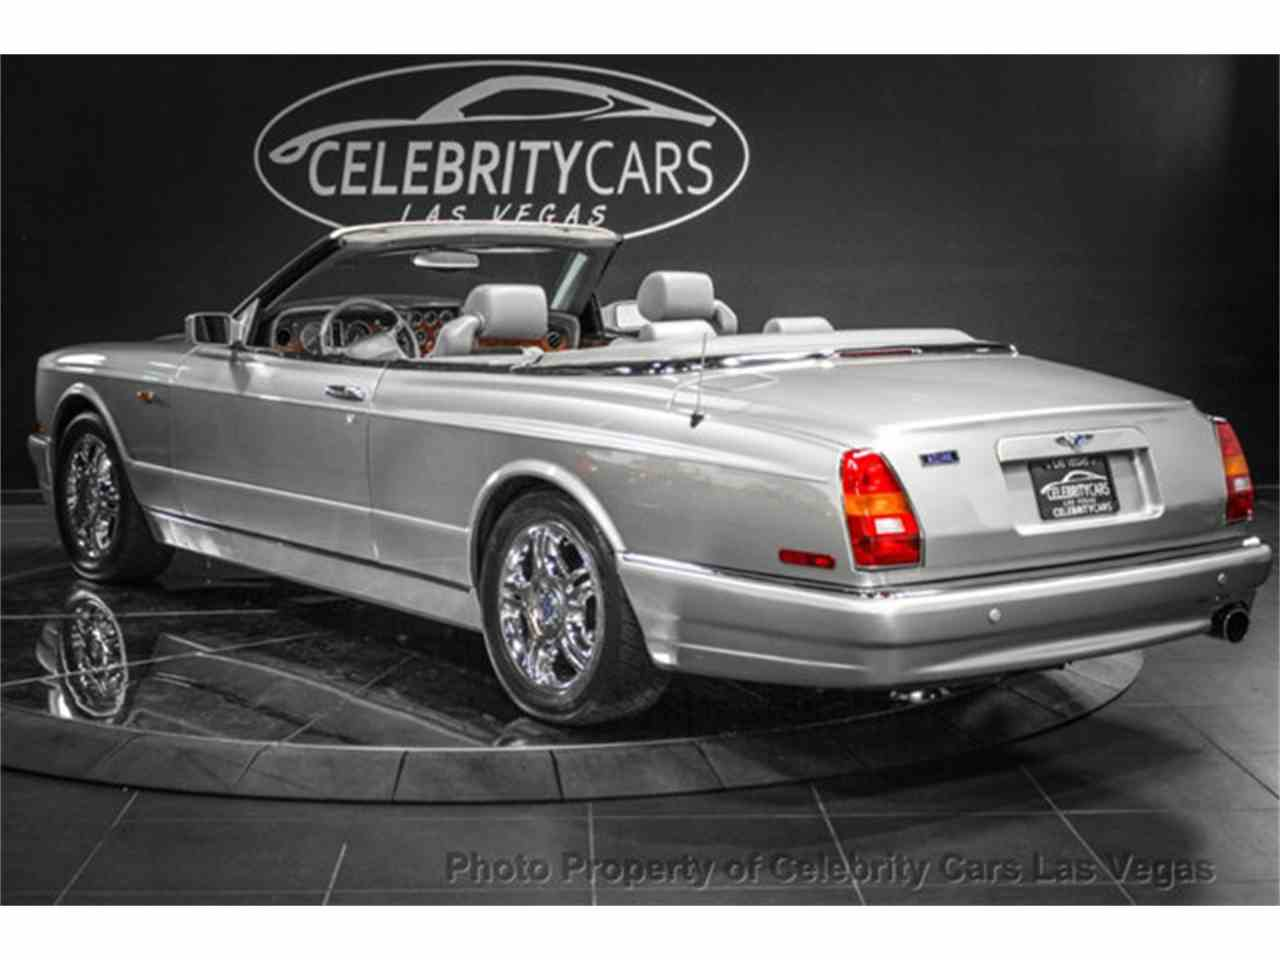 bentley limited mans sale en azure monaco classics sotheby rm edition series for le s auctions of sporting lots